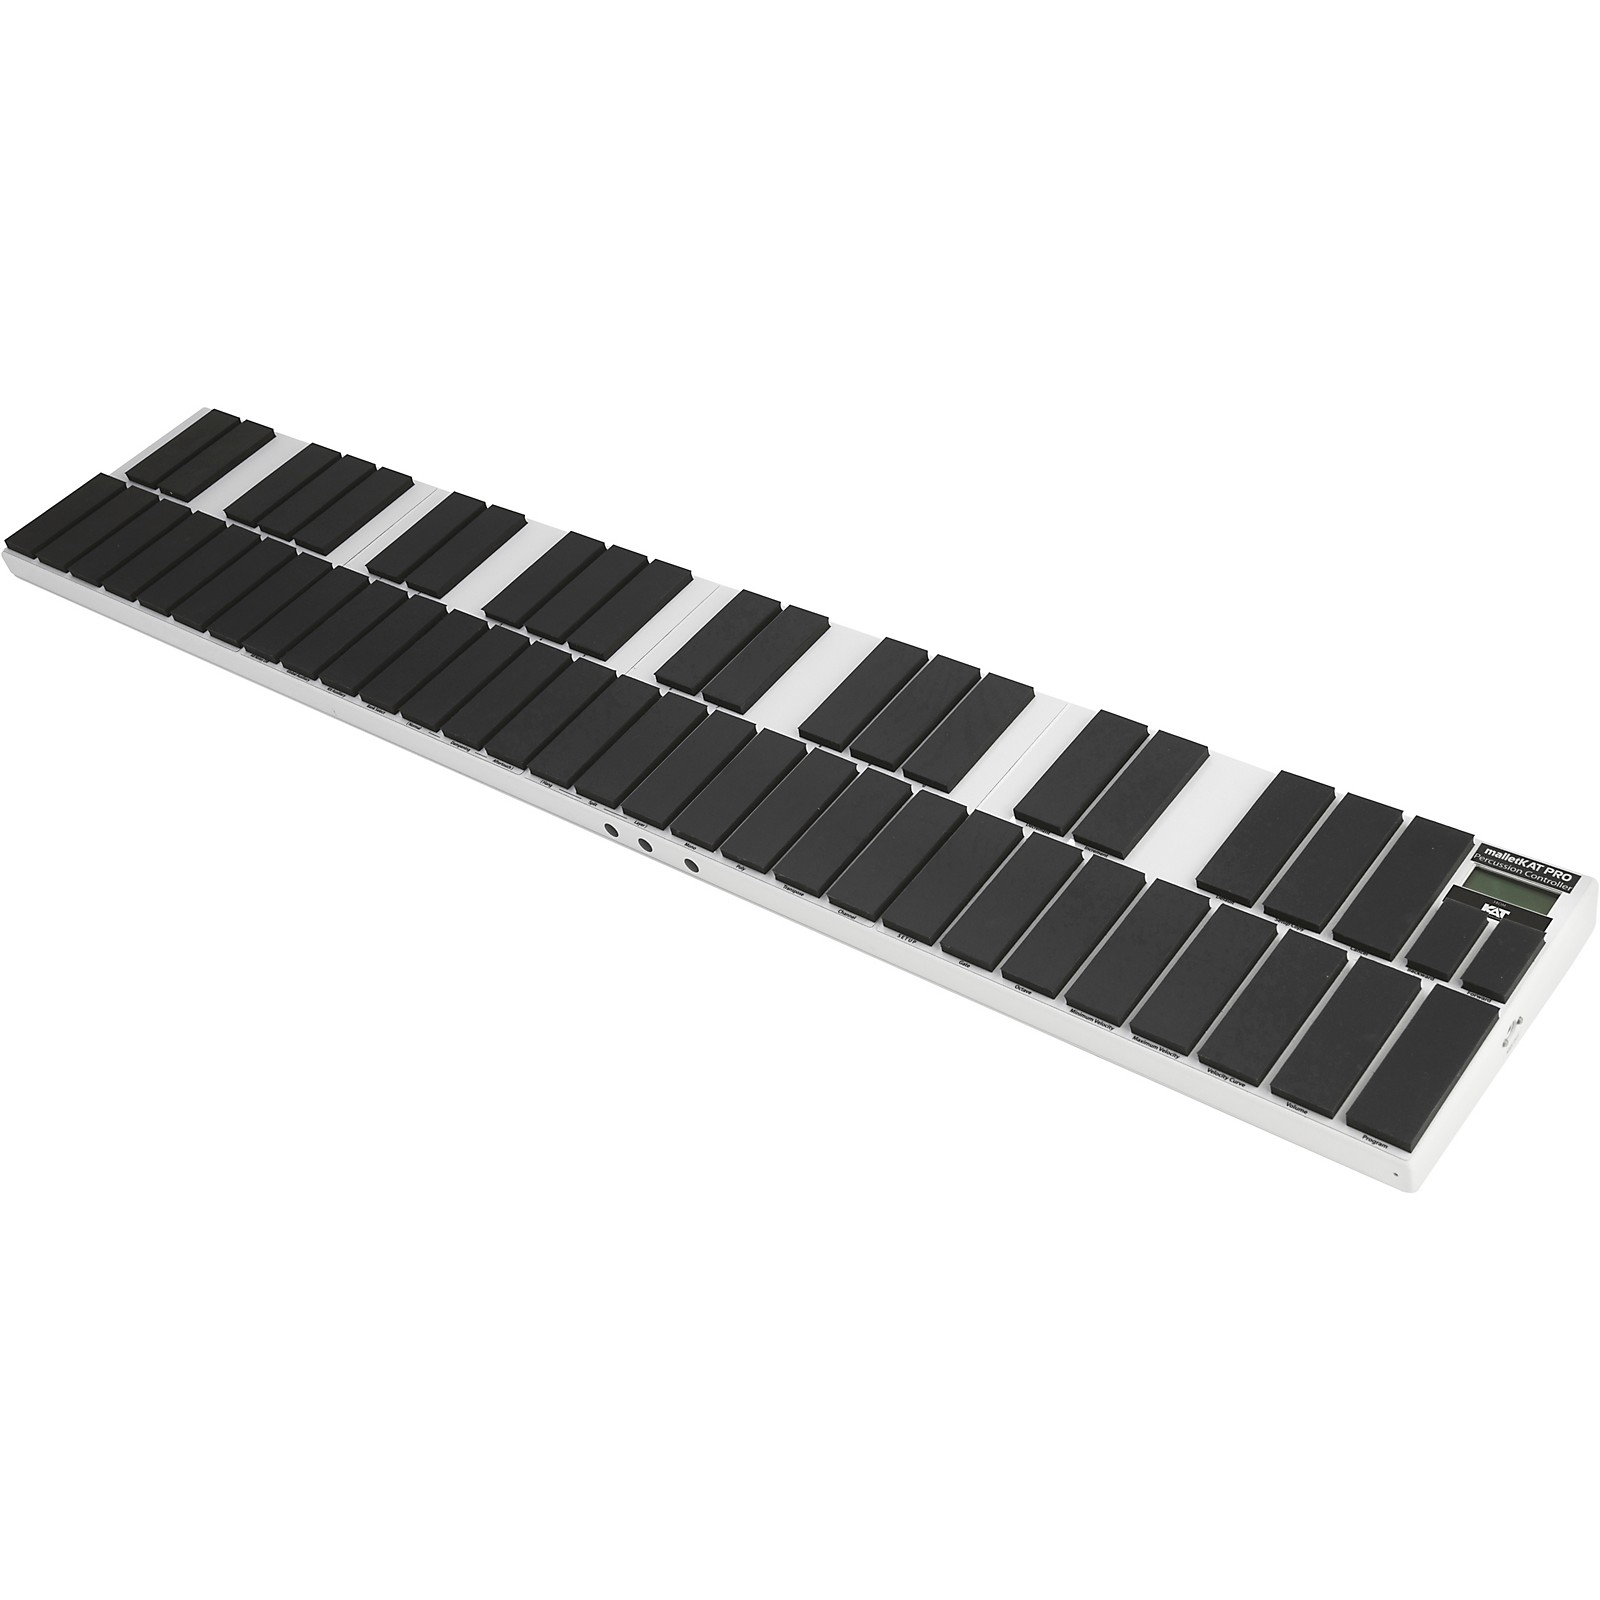 KAT Percussion MalletKAT 8 Grand (Controller Only) 4-Octave Keyboard Percussion Controller